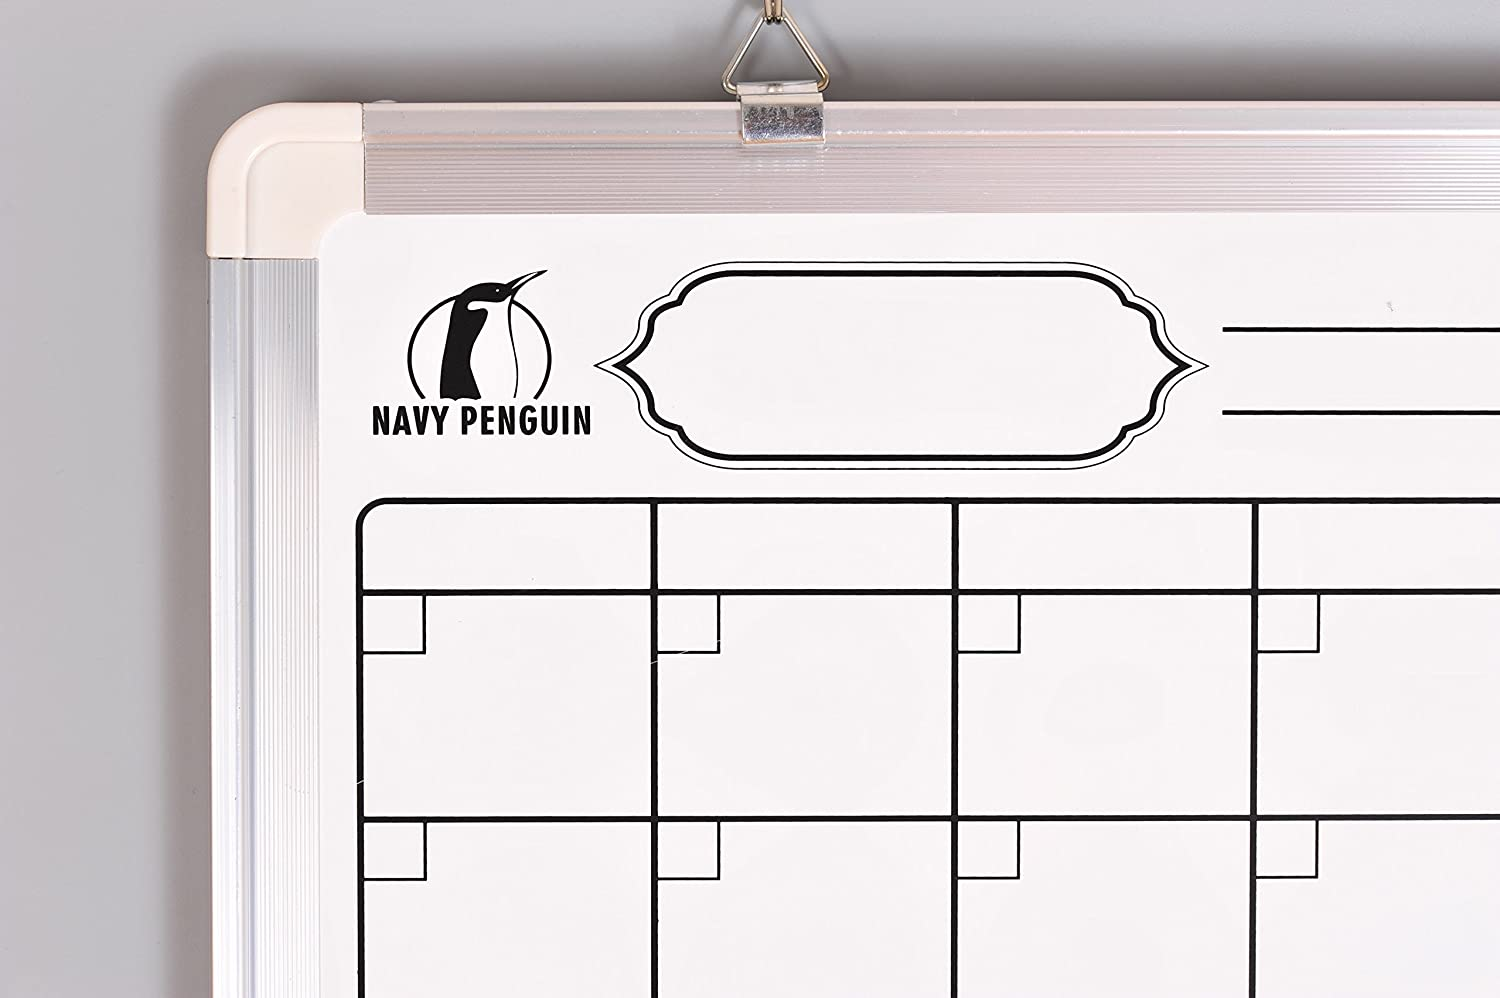 Navy Penguin Whiteboard Monthly Wall Calendar Set 4 Dry Wipe Pens 24 x 18 Magnetic Planner Dry Erase//Cork Board with 1 Magnetic Eraser 4 Magnets and 10 Pins Small White Bulletin Vision Board